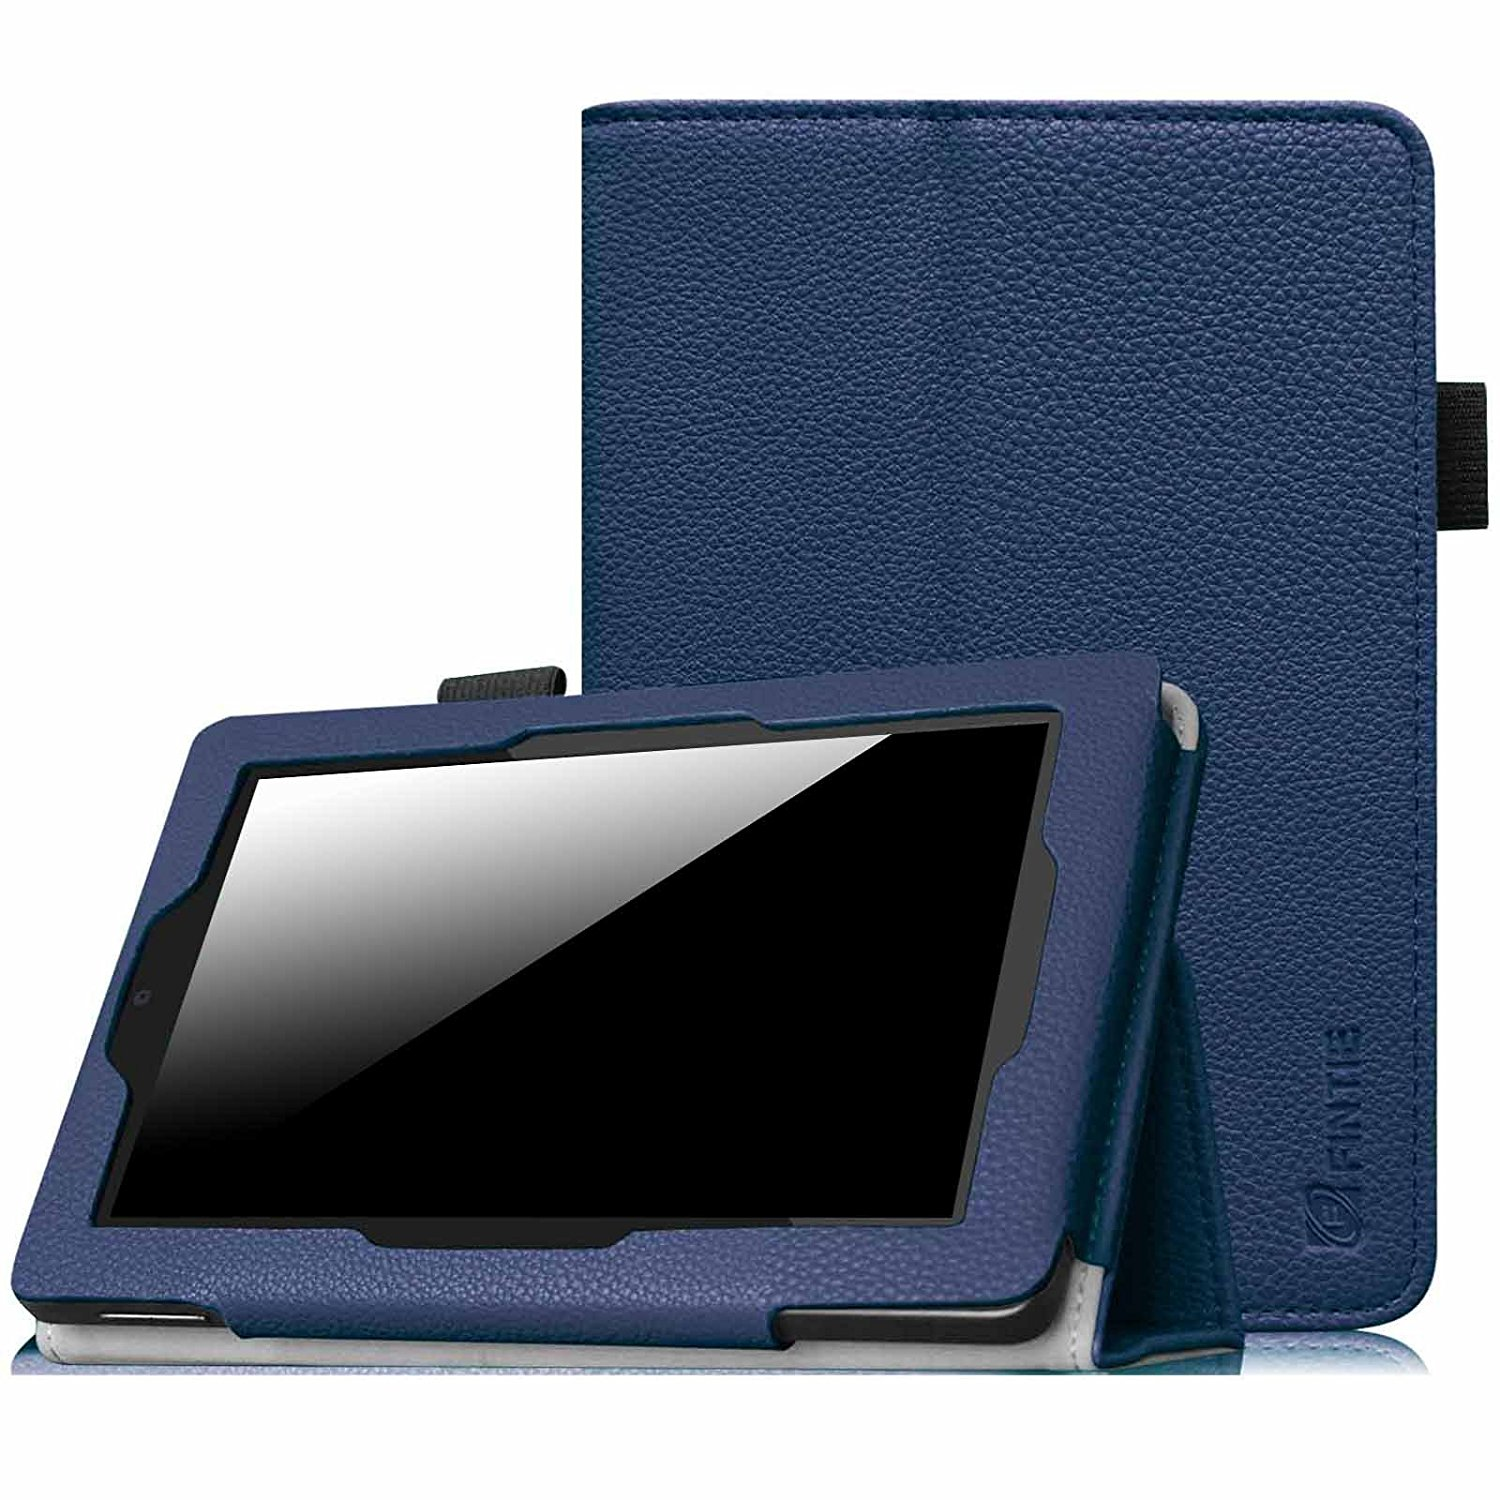 Fintie Kindle Fire HD 7 Tablet (2014 Oct Release) Case - Slim Fit PU Leather Stand Cover with Sleep/Wake Feature, Navy